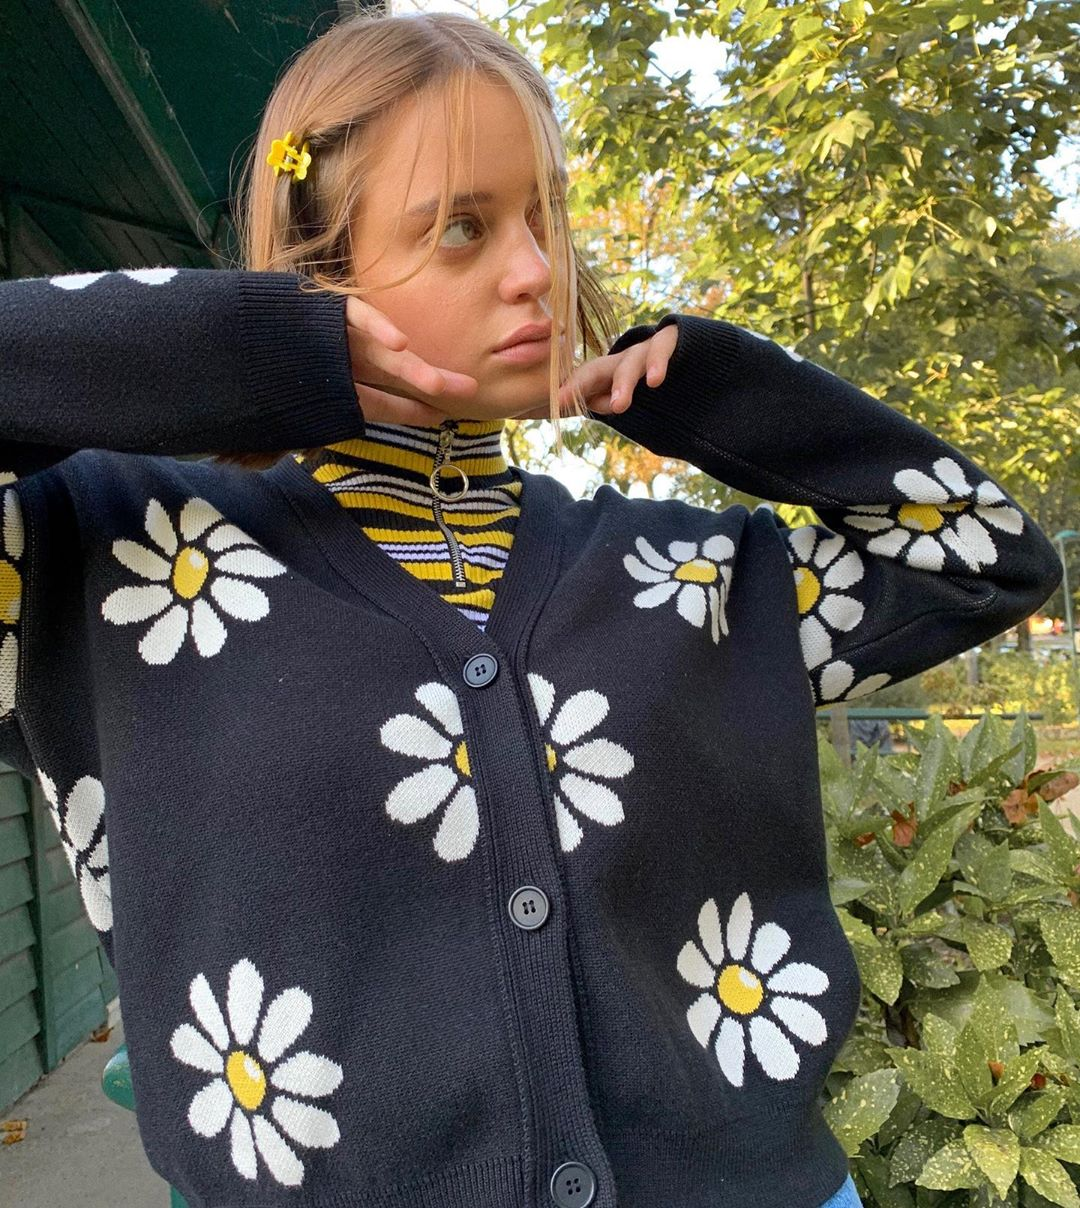 AESTHETIC VINTAGE DAISY KNITTED SWEATER-Cosmique Studio-aesthetic-clothing-store